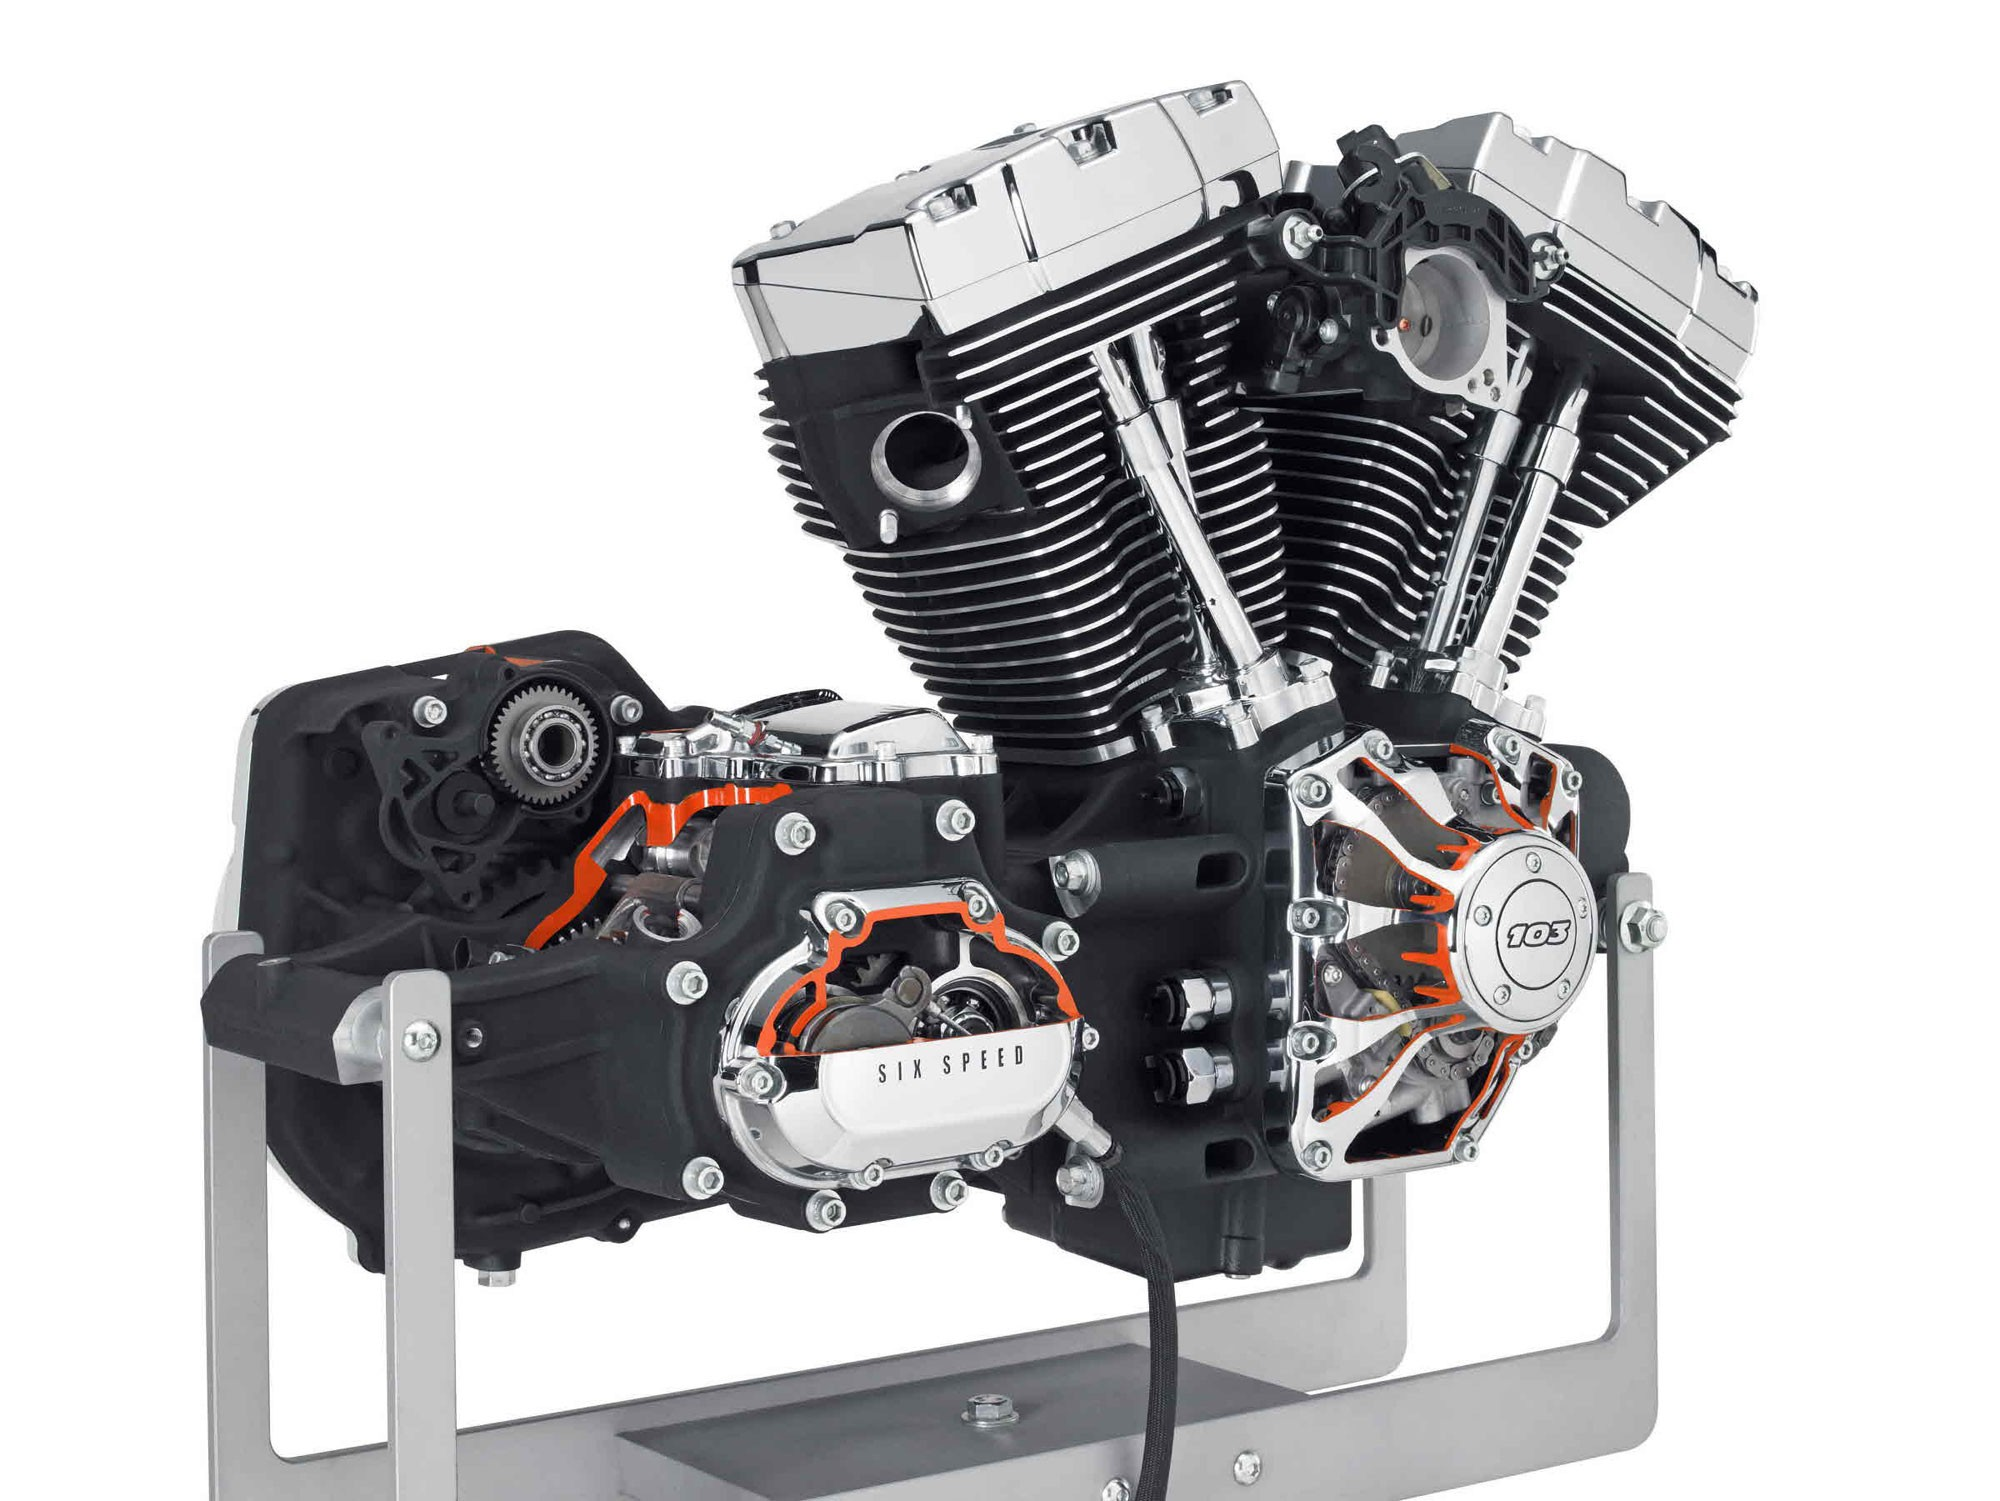 V Twin Motorcycle Engine Diagram Harley Evolution Engine Diagram Books Wiring Diagram • Of V Twin Motorcycle Engine Diagram